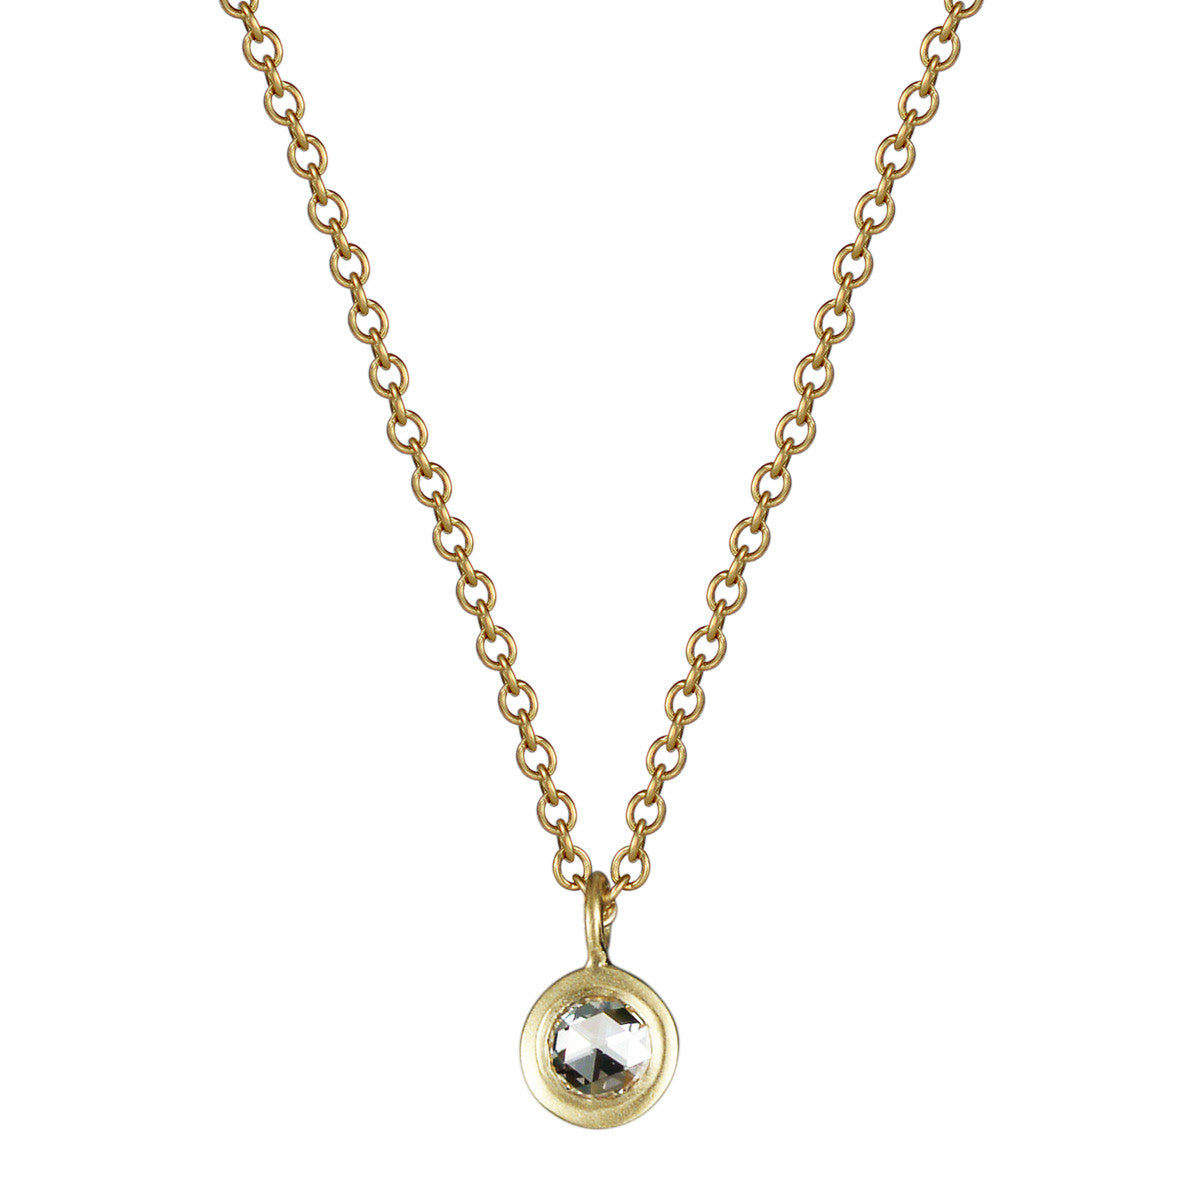 18K Gold Single Diamond Pendant